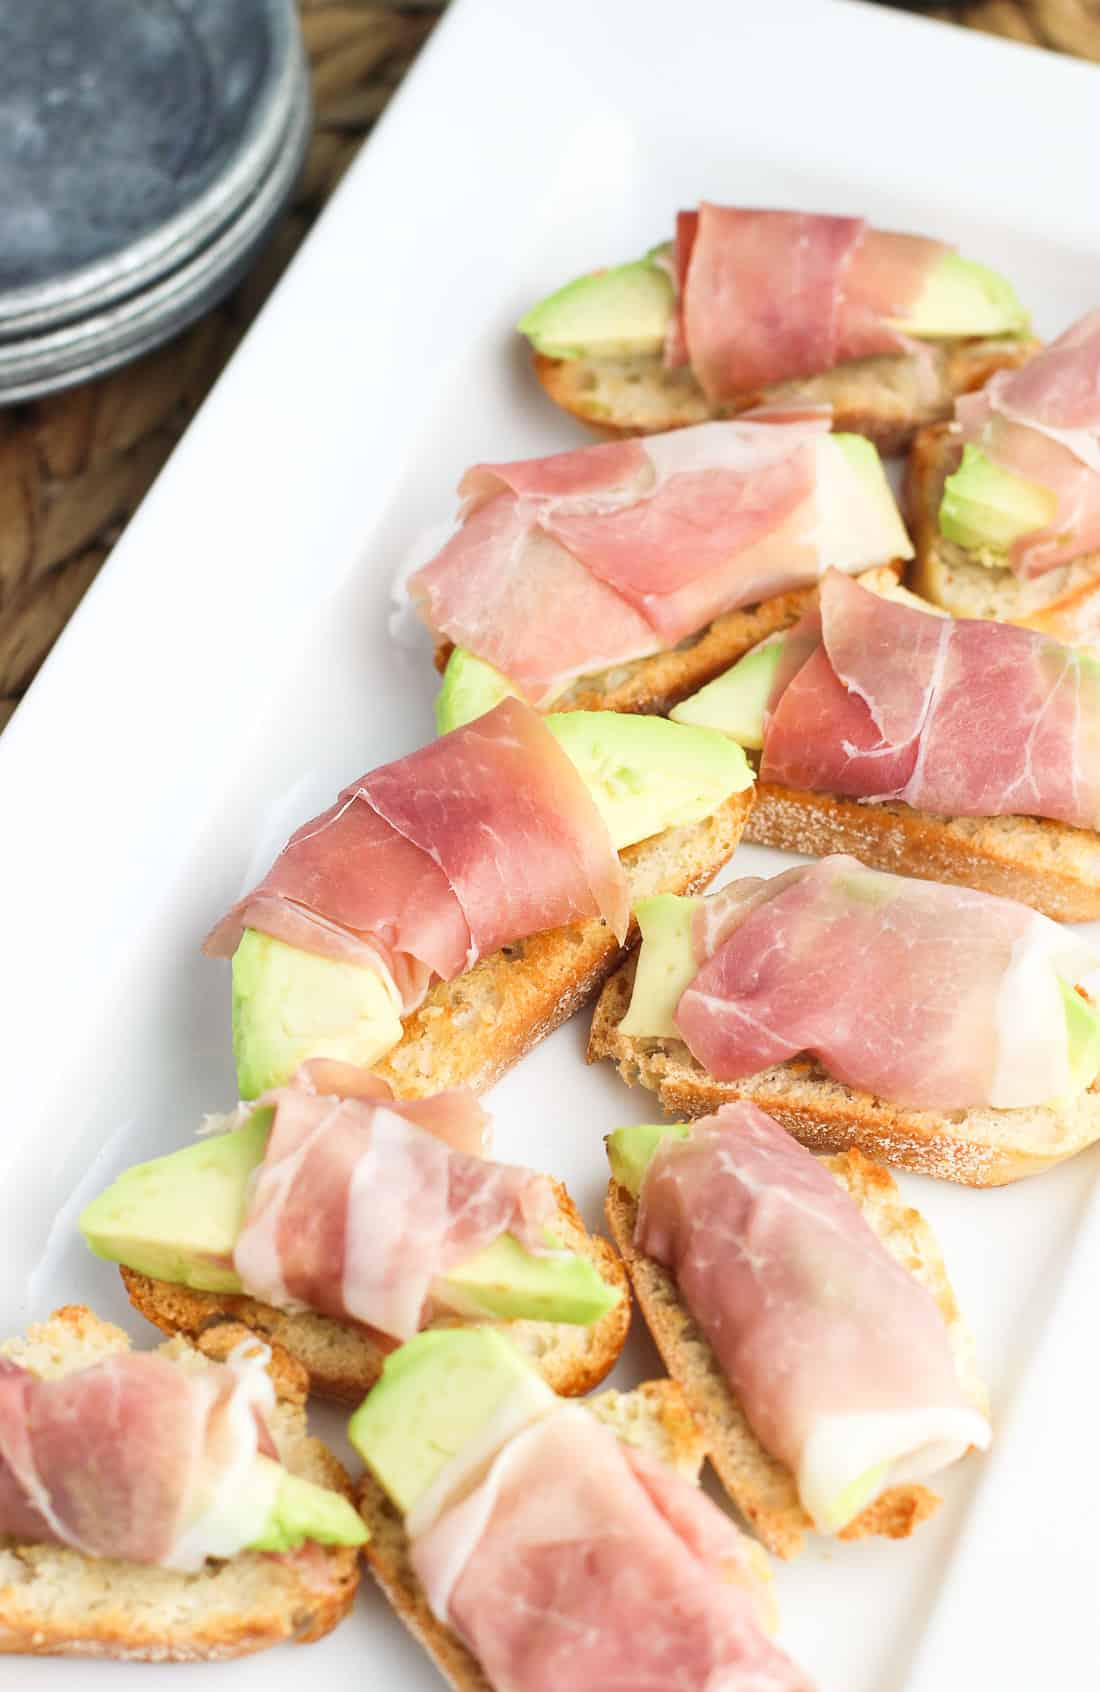 Prosciutto-Wrapped Avocado Crostini are a quick and delicious appetizer recipe, topped with a simple balsamic glaze.